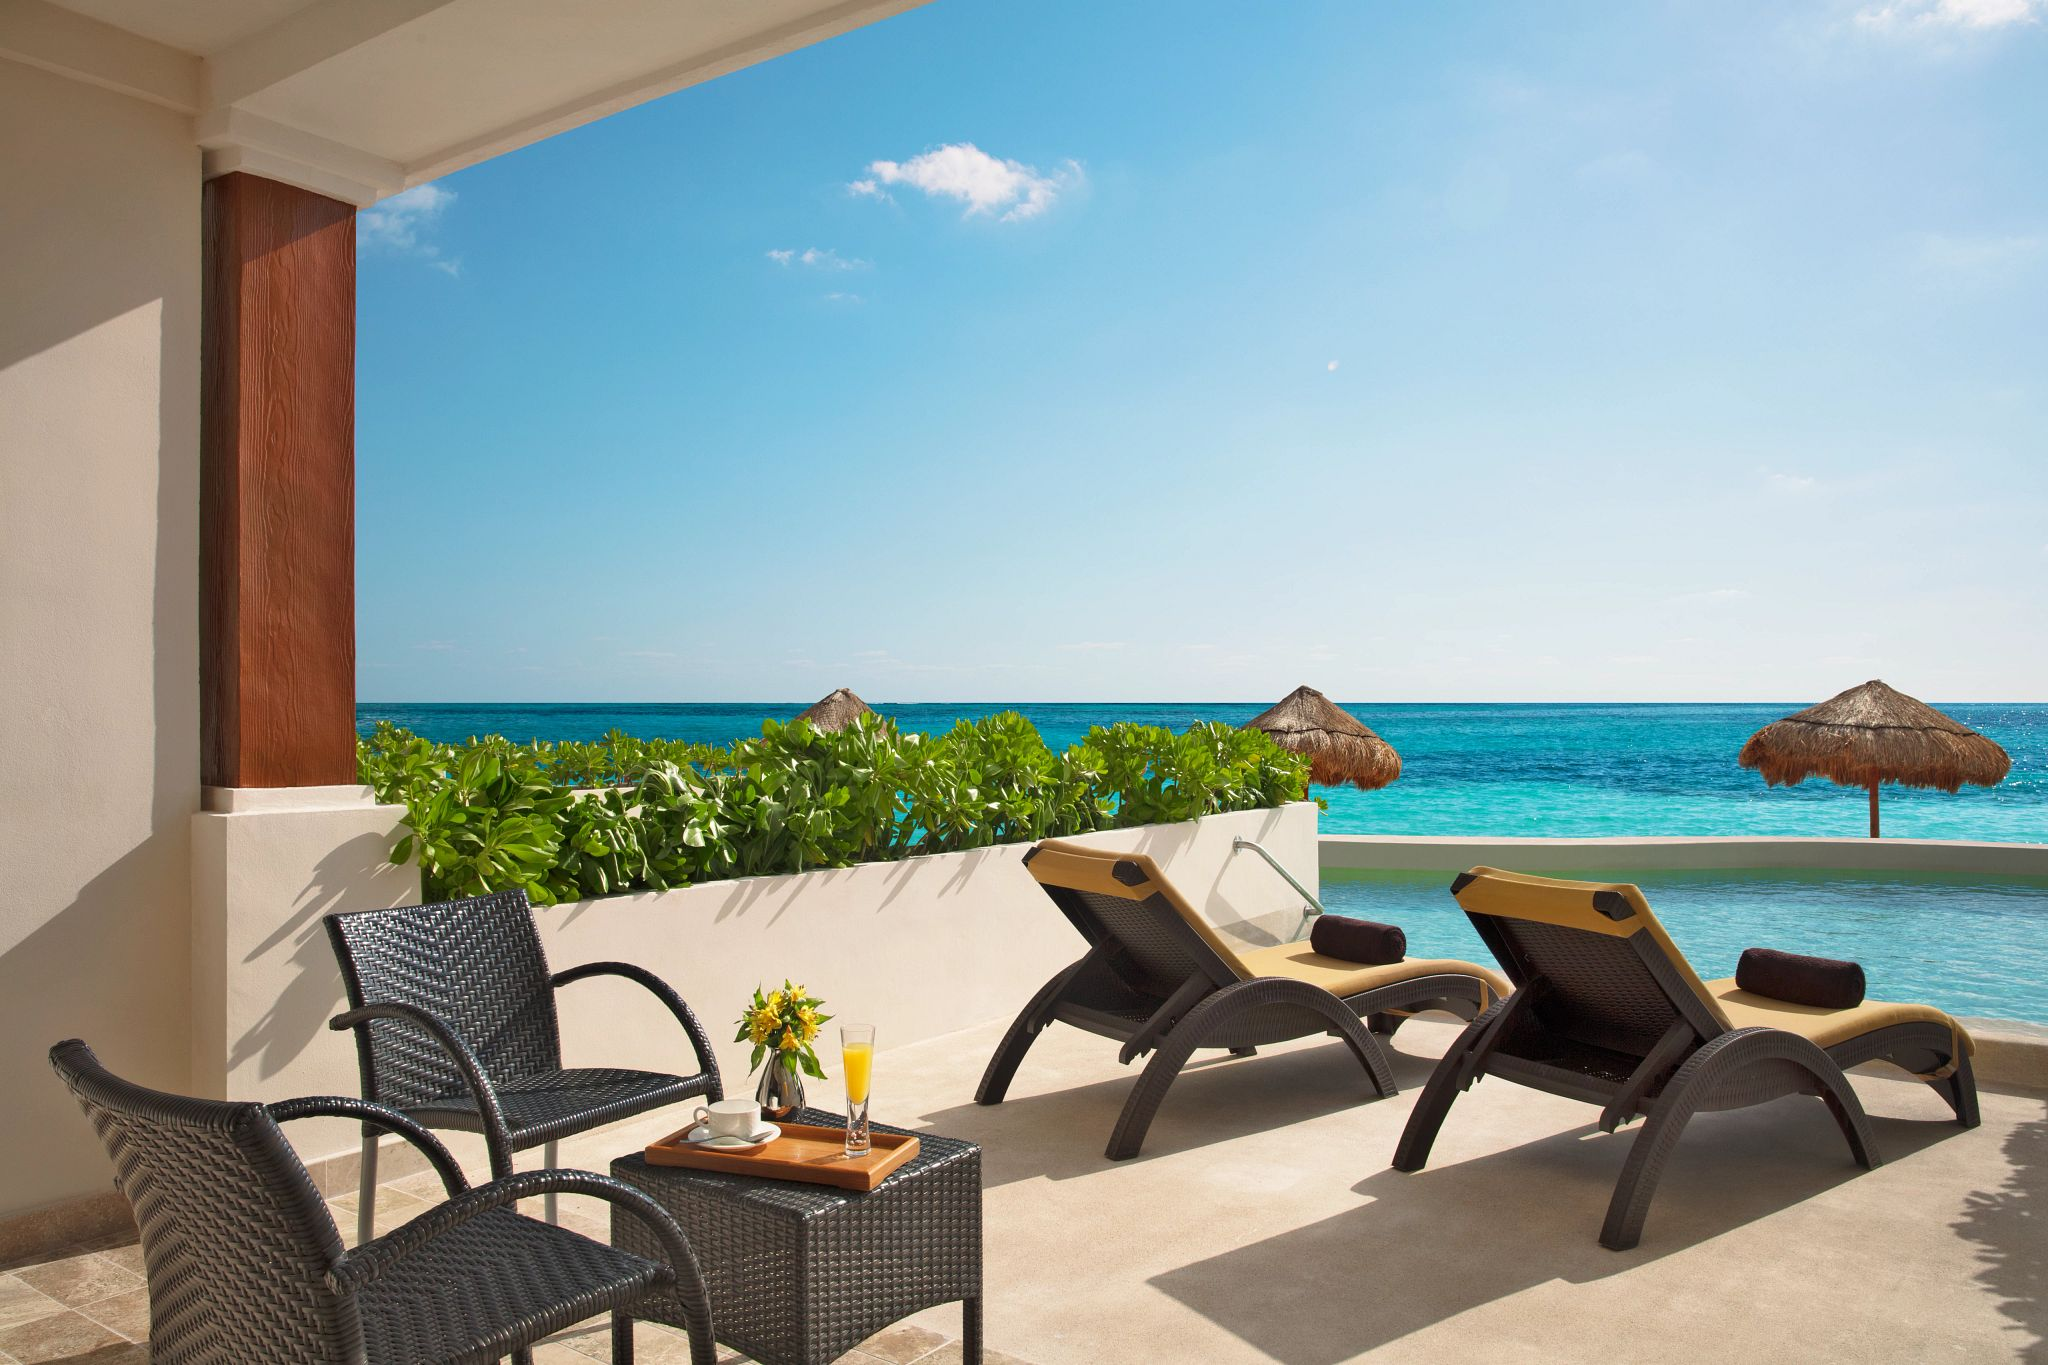 swim out terrace overlooking the ocean with lounge chairs